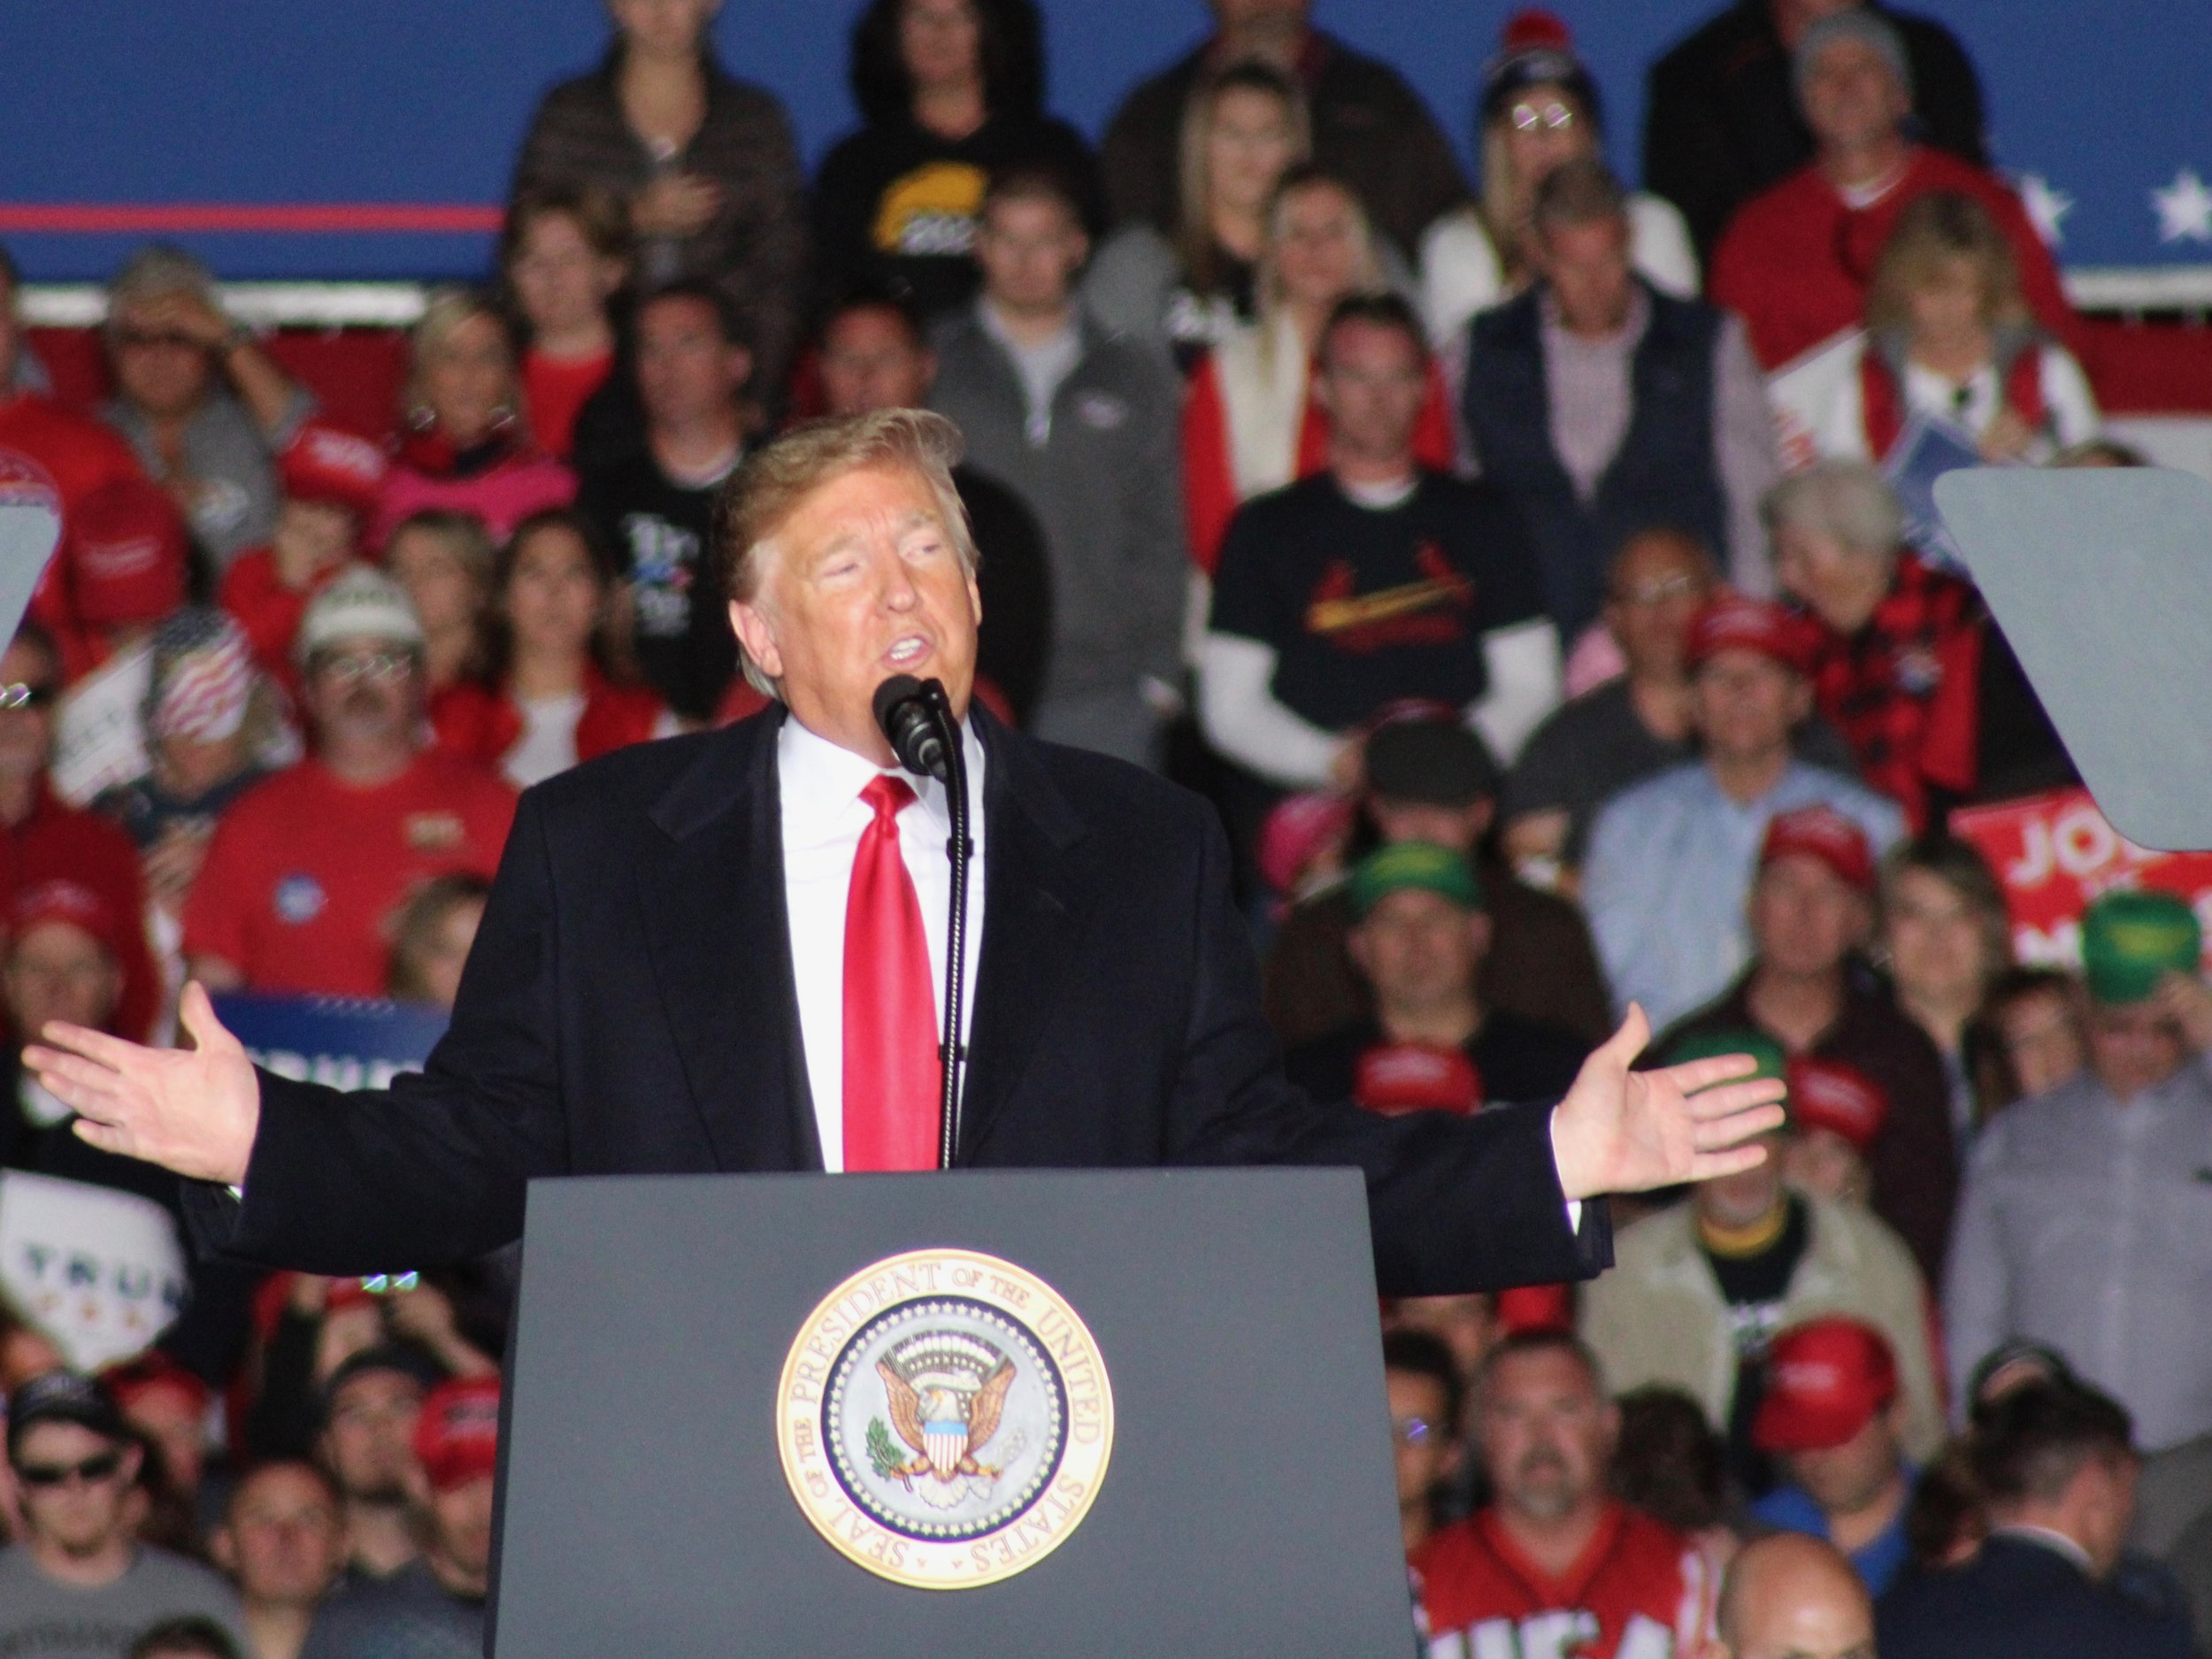 President Trump told more than a few stretchers in his campaign rally at Southern Illinois Airport. (One Illinois/Ted Cox)